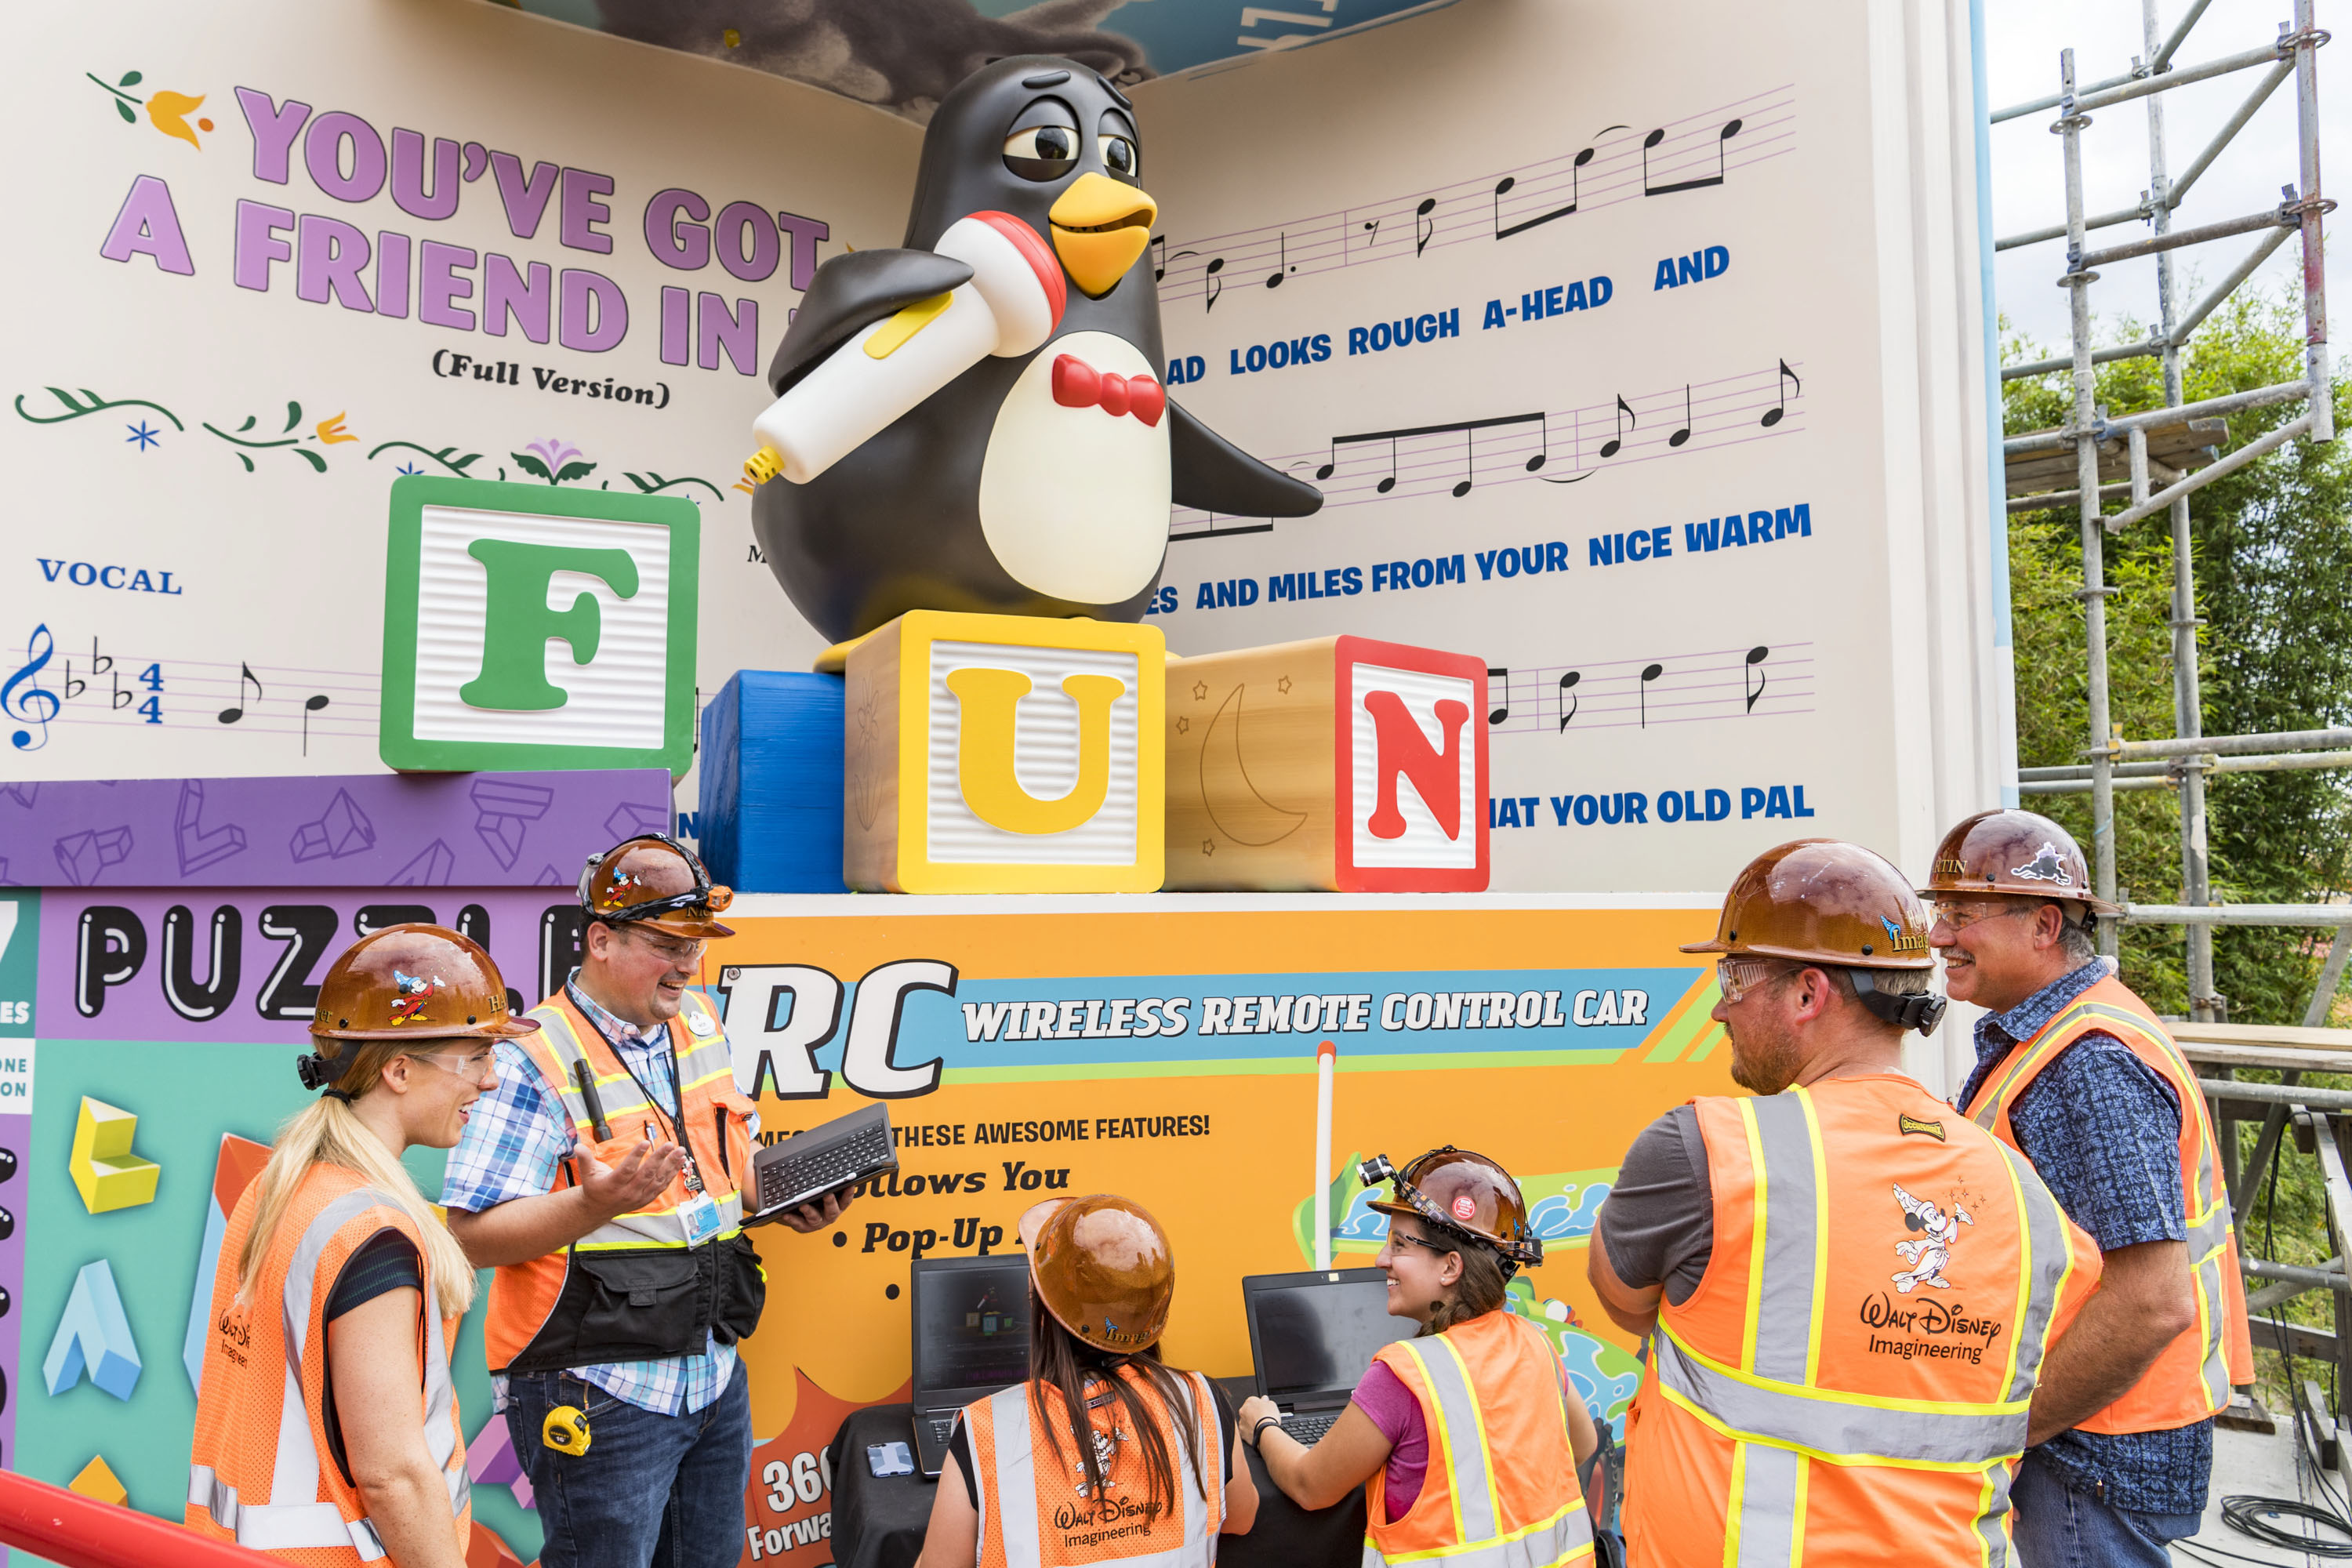 """Slide 6 of 15: Wheezy, the squeaky toy penguin from the Disney¥Pixar """"Toy Story"""" films, will delight guests riding Slinky Dog Dash, the family-friendly coaster that will be part of the new Toy Story Land opening June 30, 2018, at Disney's Hollywood Studios. The all-new Audio-Animatronic figure will serenade guests with """"YouÕve Got a Friend in Me,"""" the popular song from the films.  The new 11-acre Toy Story Land will make Walt Disney World guests feel like they have shrunk to the size of a toy in the setting of Andy's backyard where they can also take a spin aboard Alien Swirling Saucers and score high on the midway at Toy Story Mania! (Matt Stroshane, photographer)"""